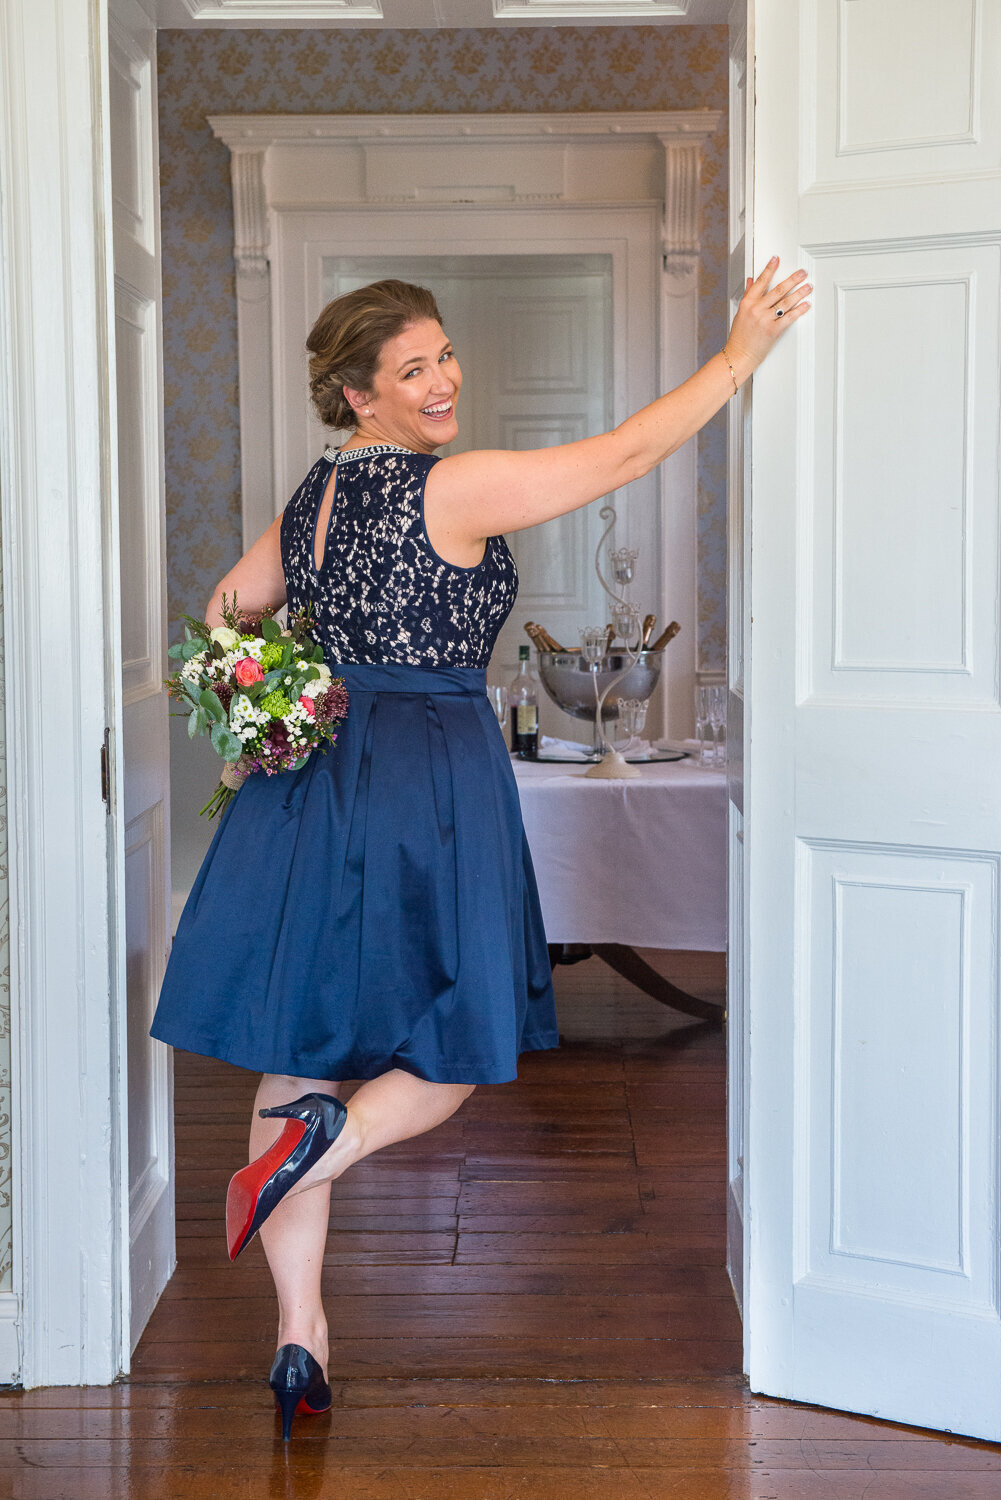 Bride in navy wedding dress wearing navy, red soled shoes